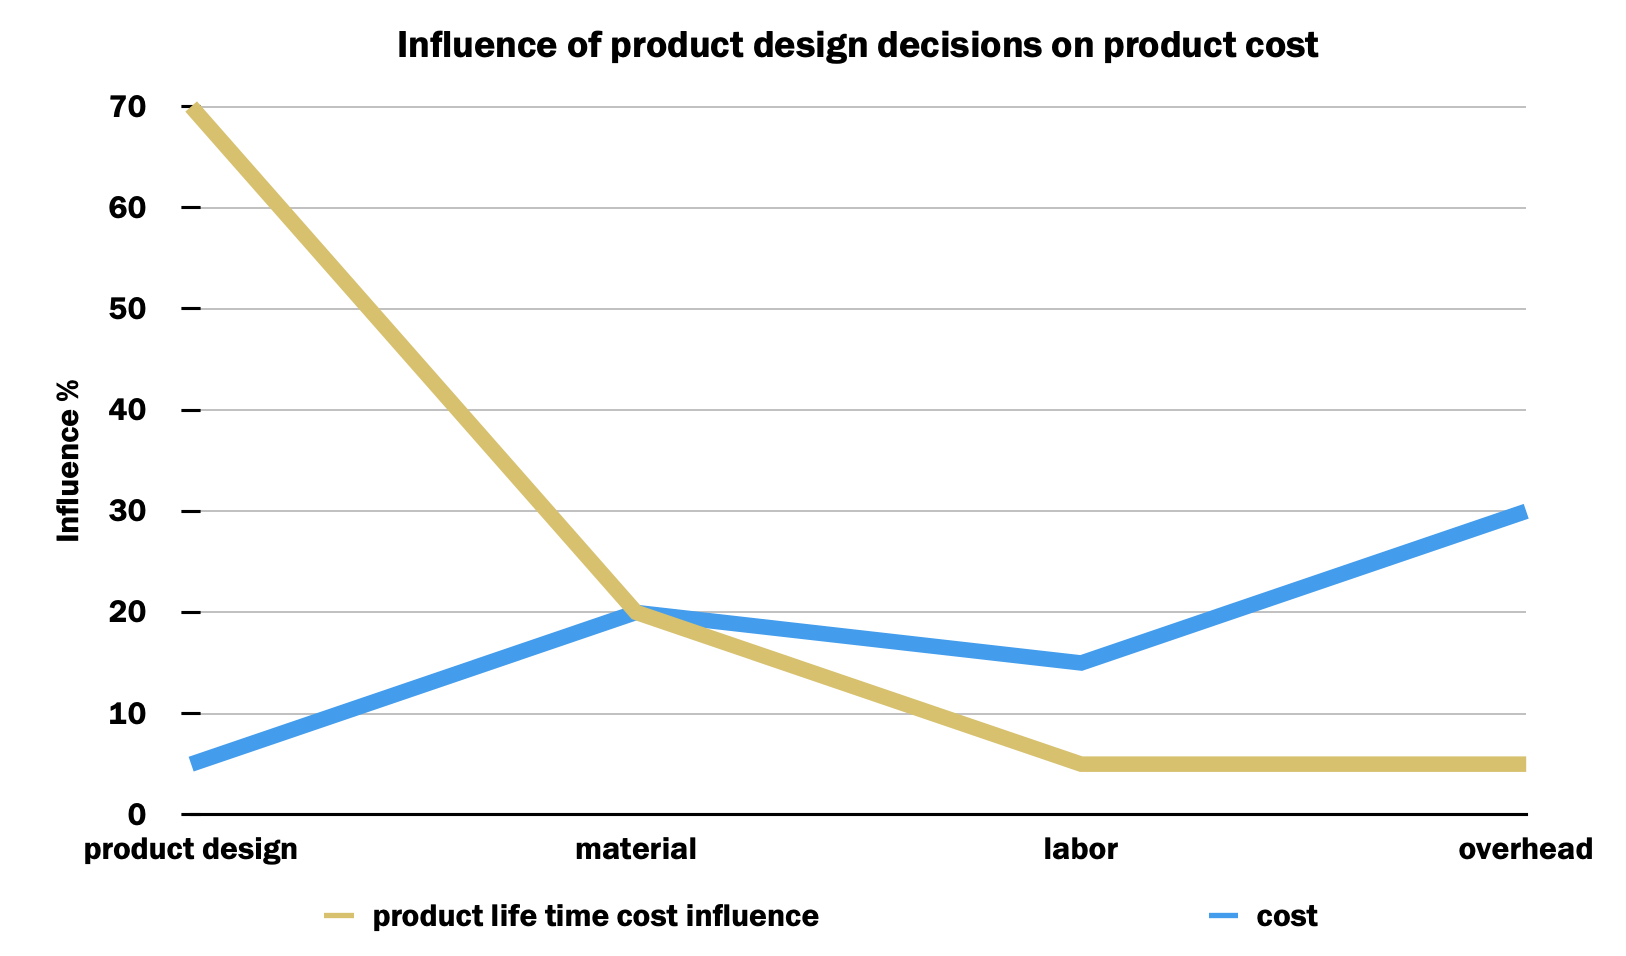 Graph visualising the influence of product design